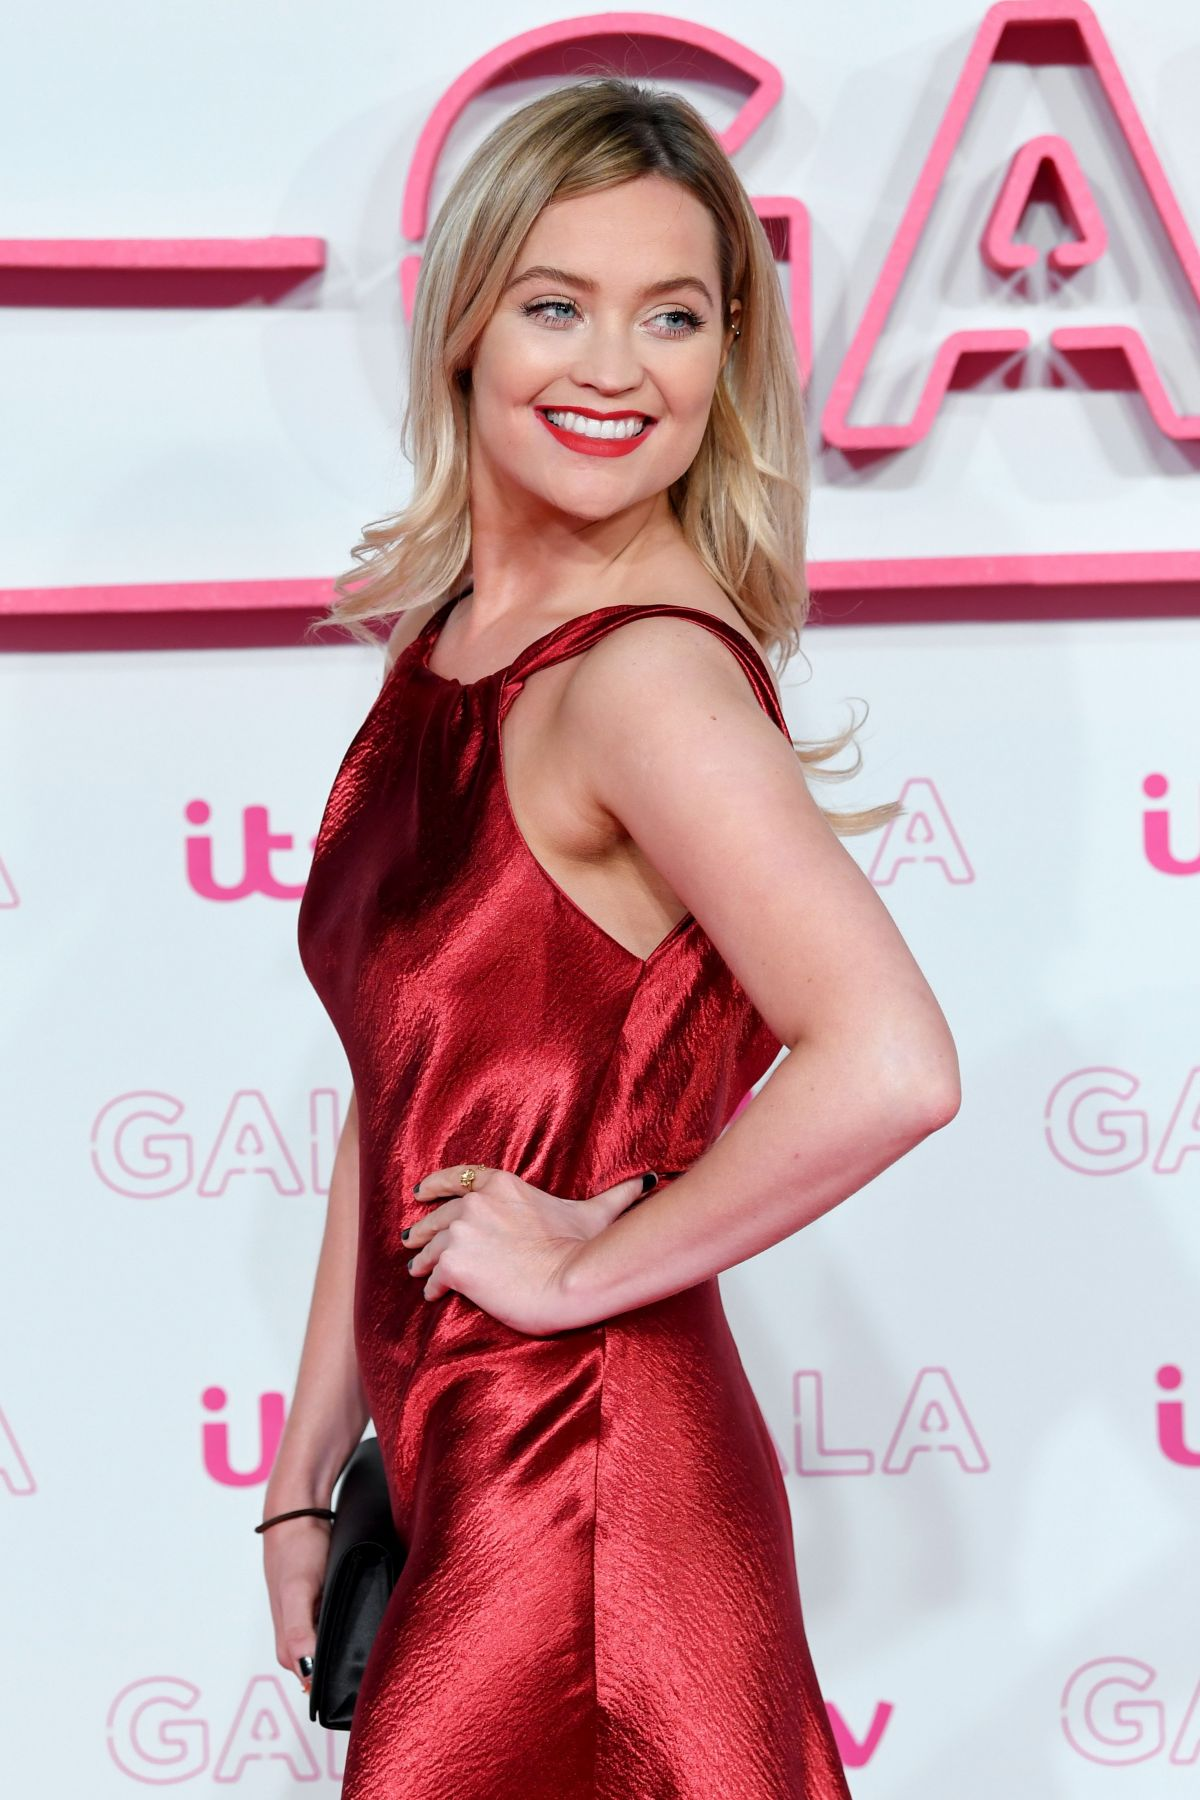 LAURA WHITMORE at ITV Gala in London 11/24/2016